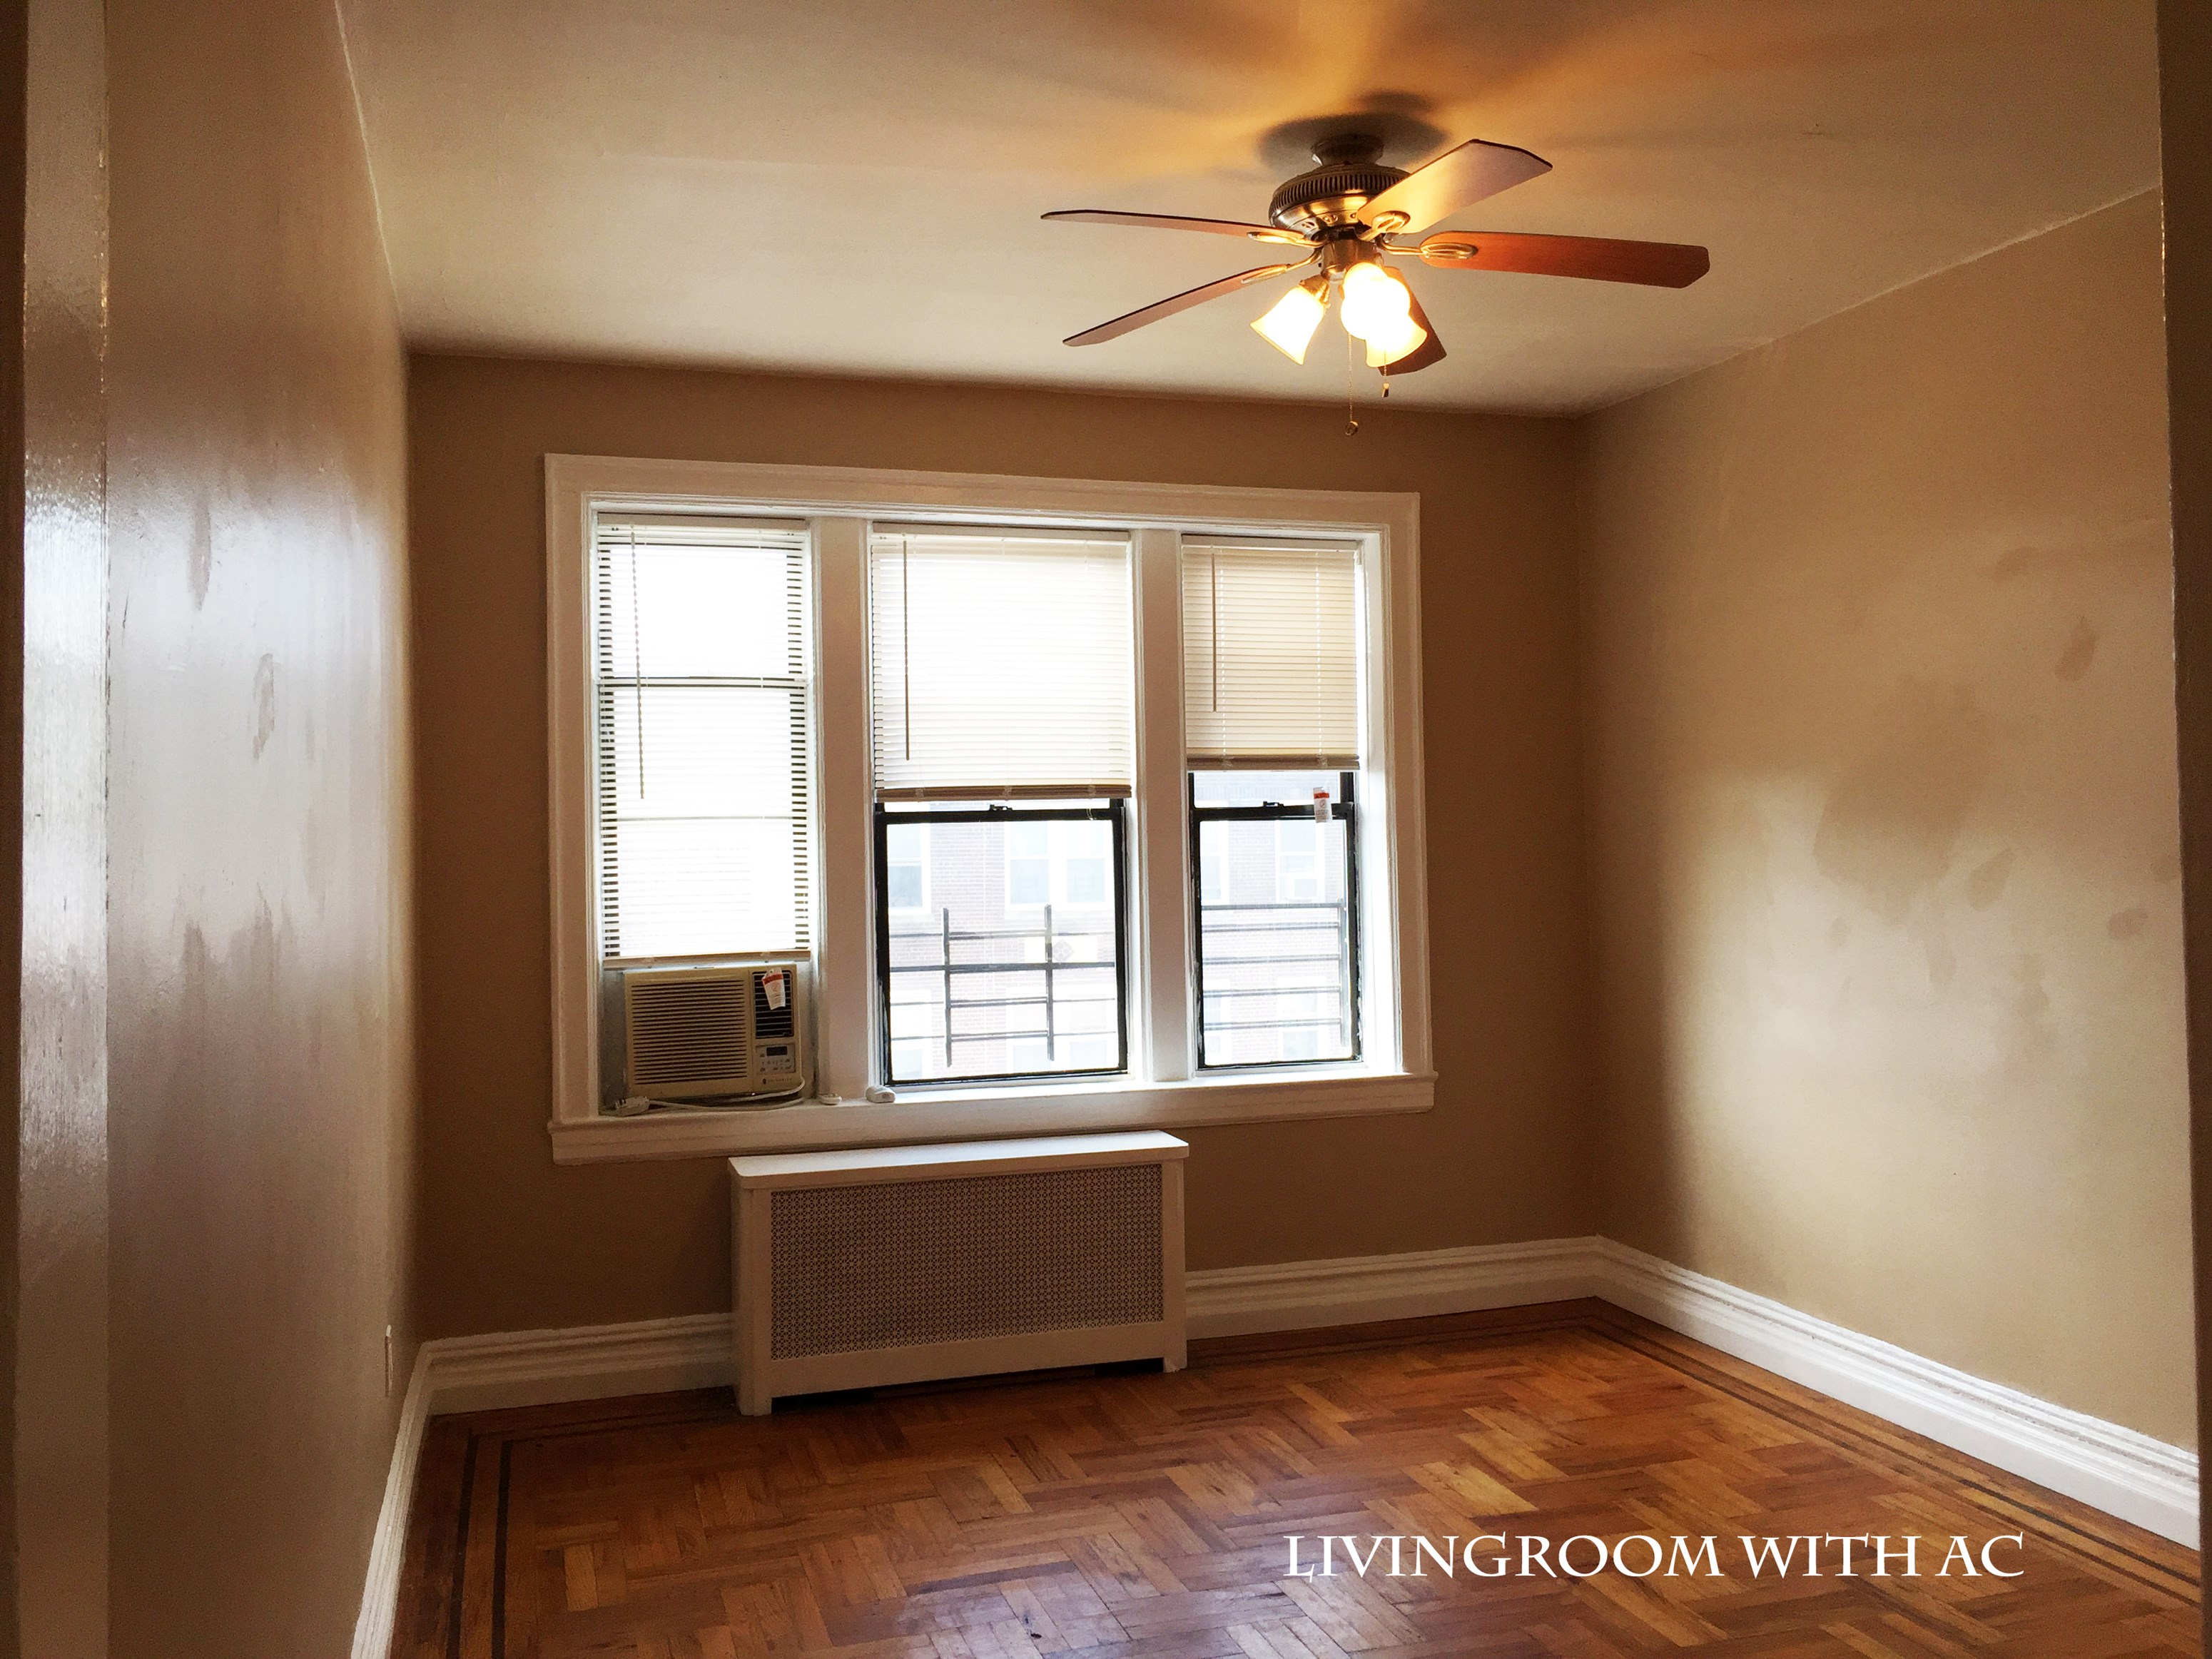 102 apartments for rent in jersey city nj flats for rent sulekha